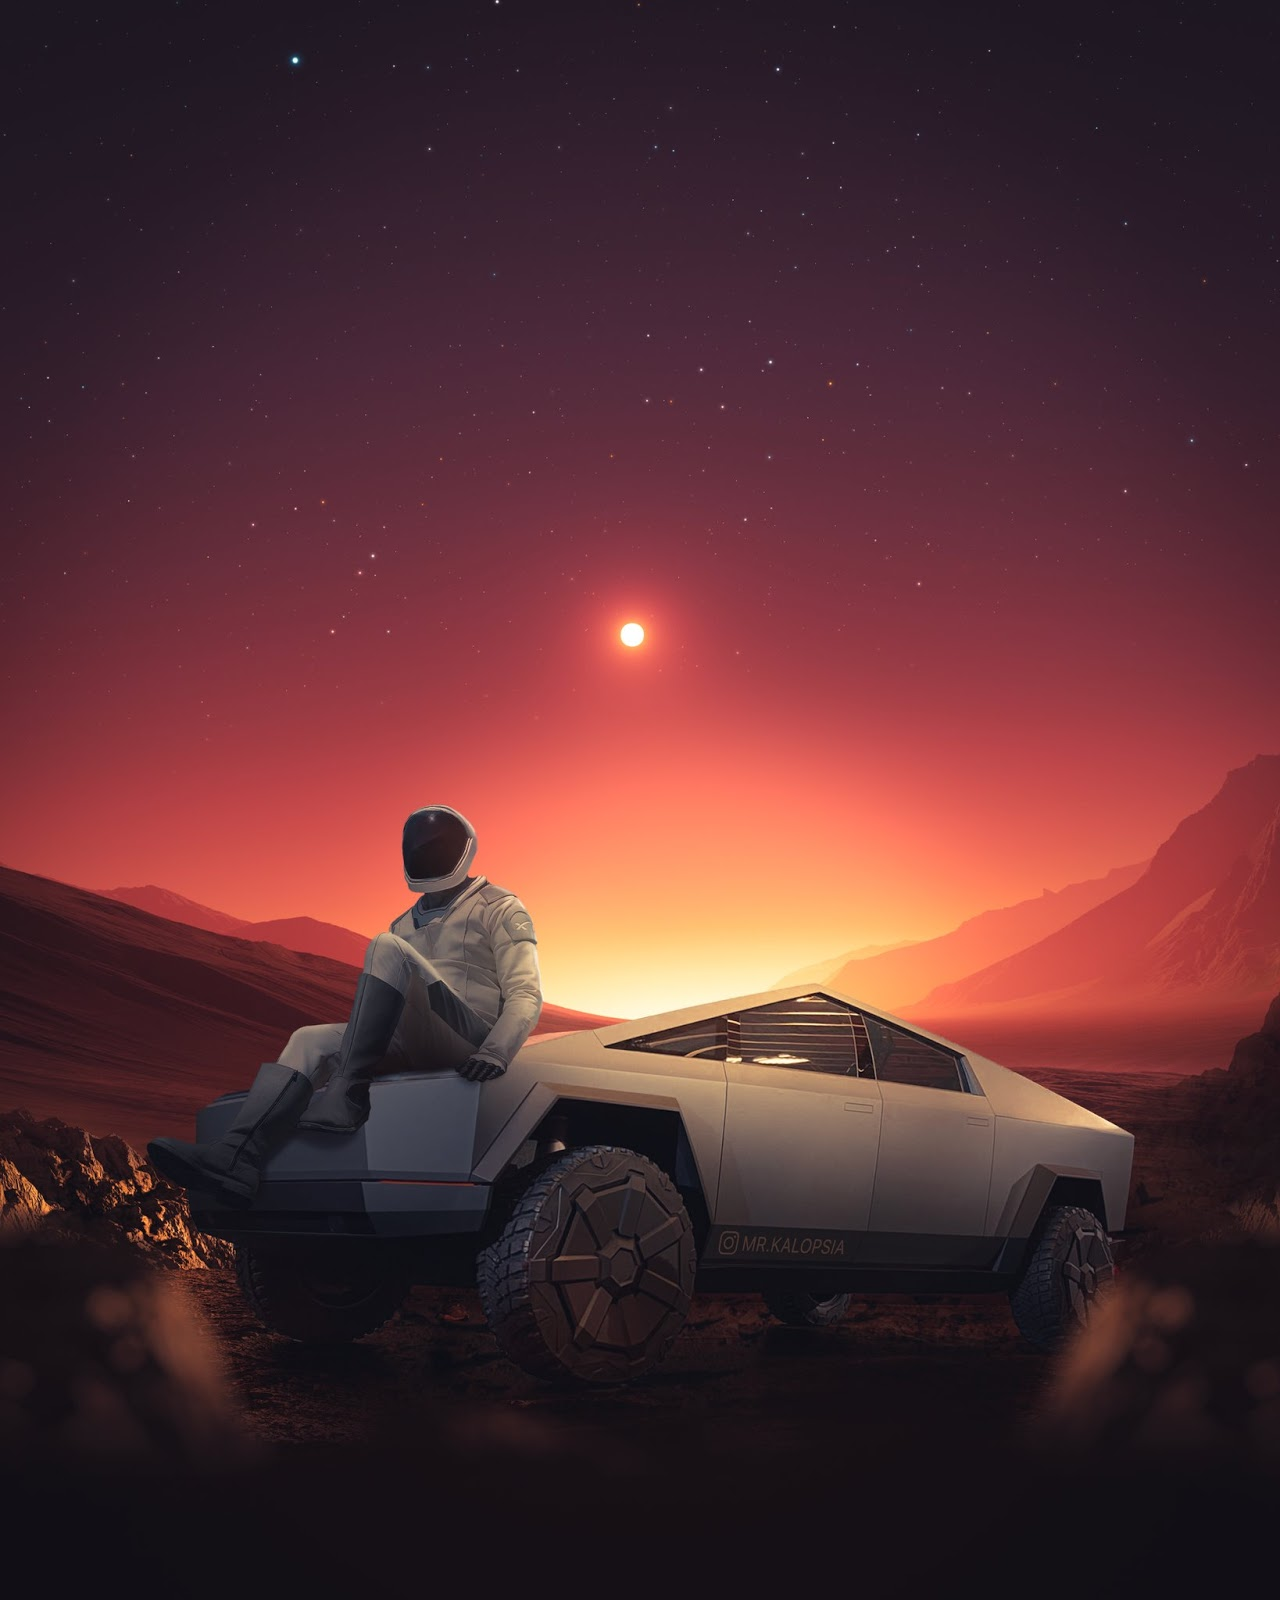 SpaceX Starman resting at his Tesla Cybertruck on Mars by Eashan Misra